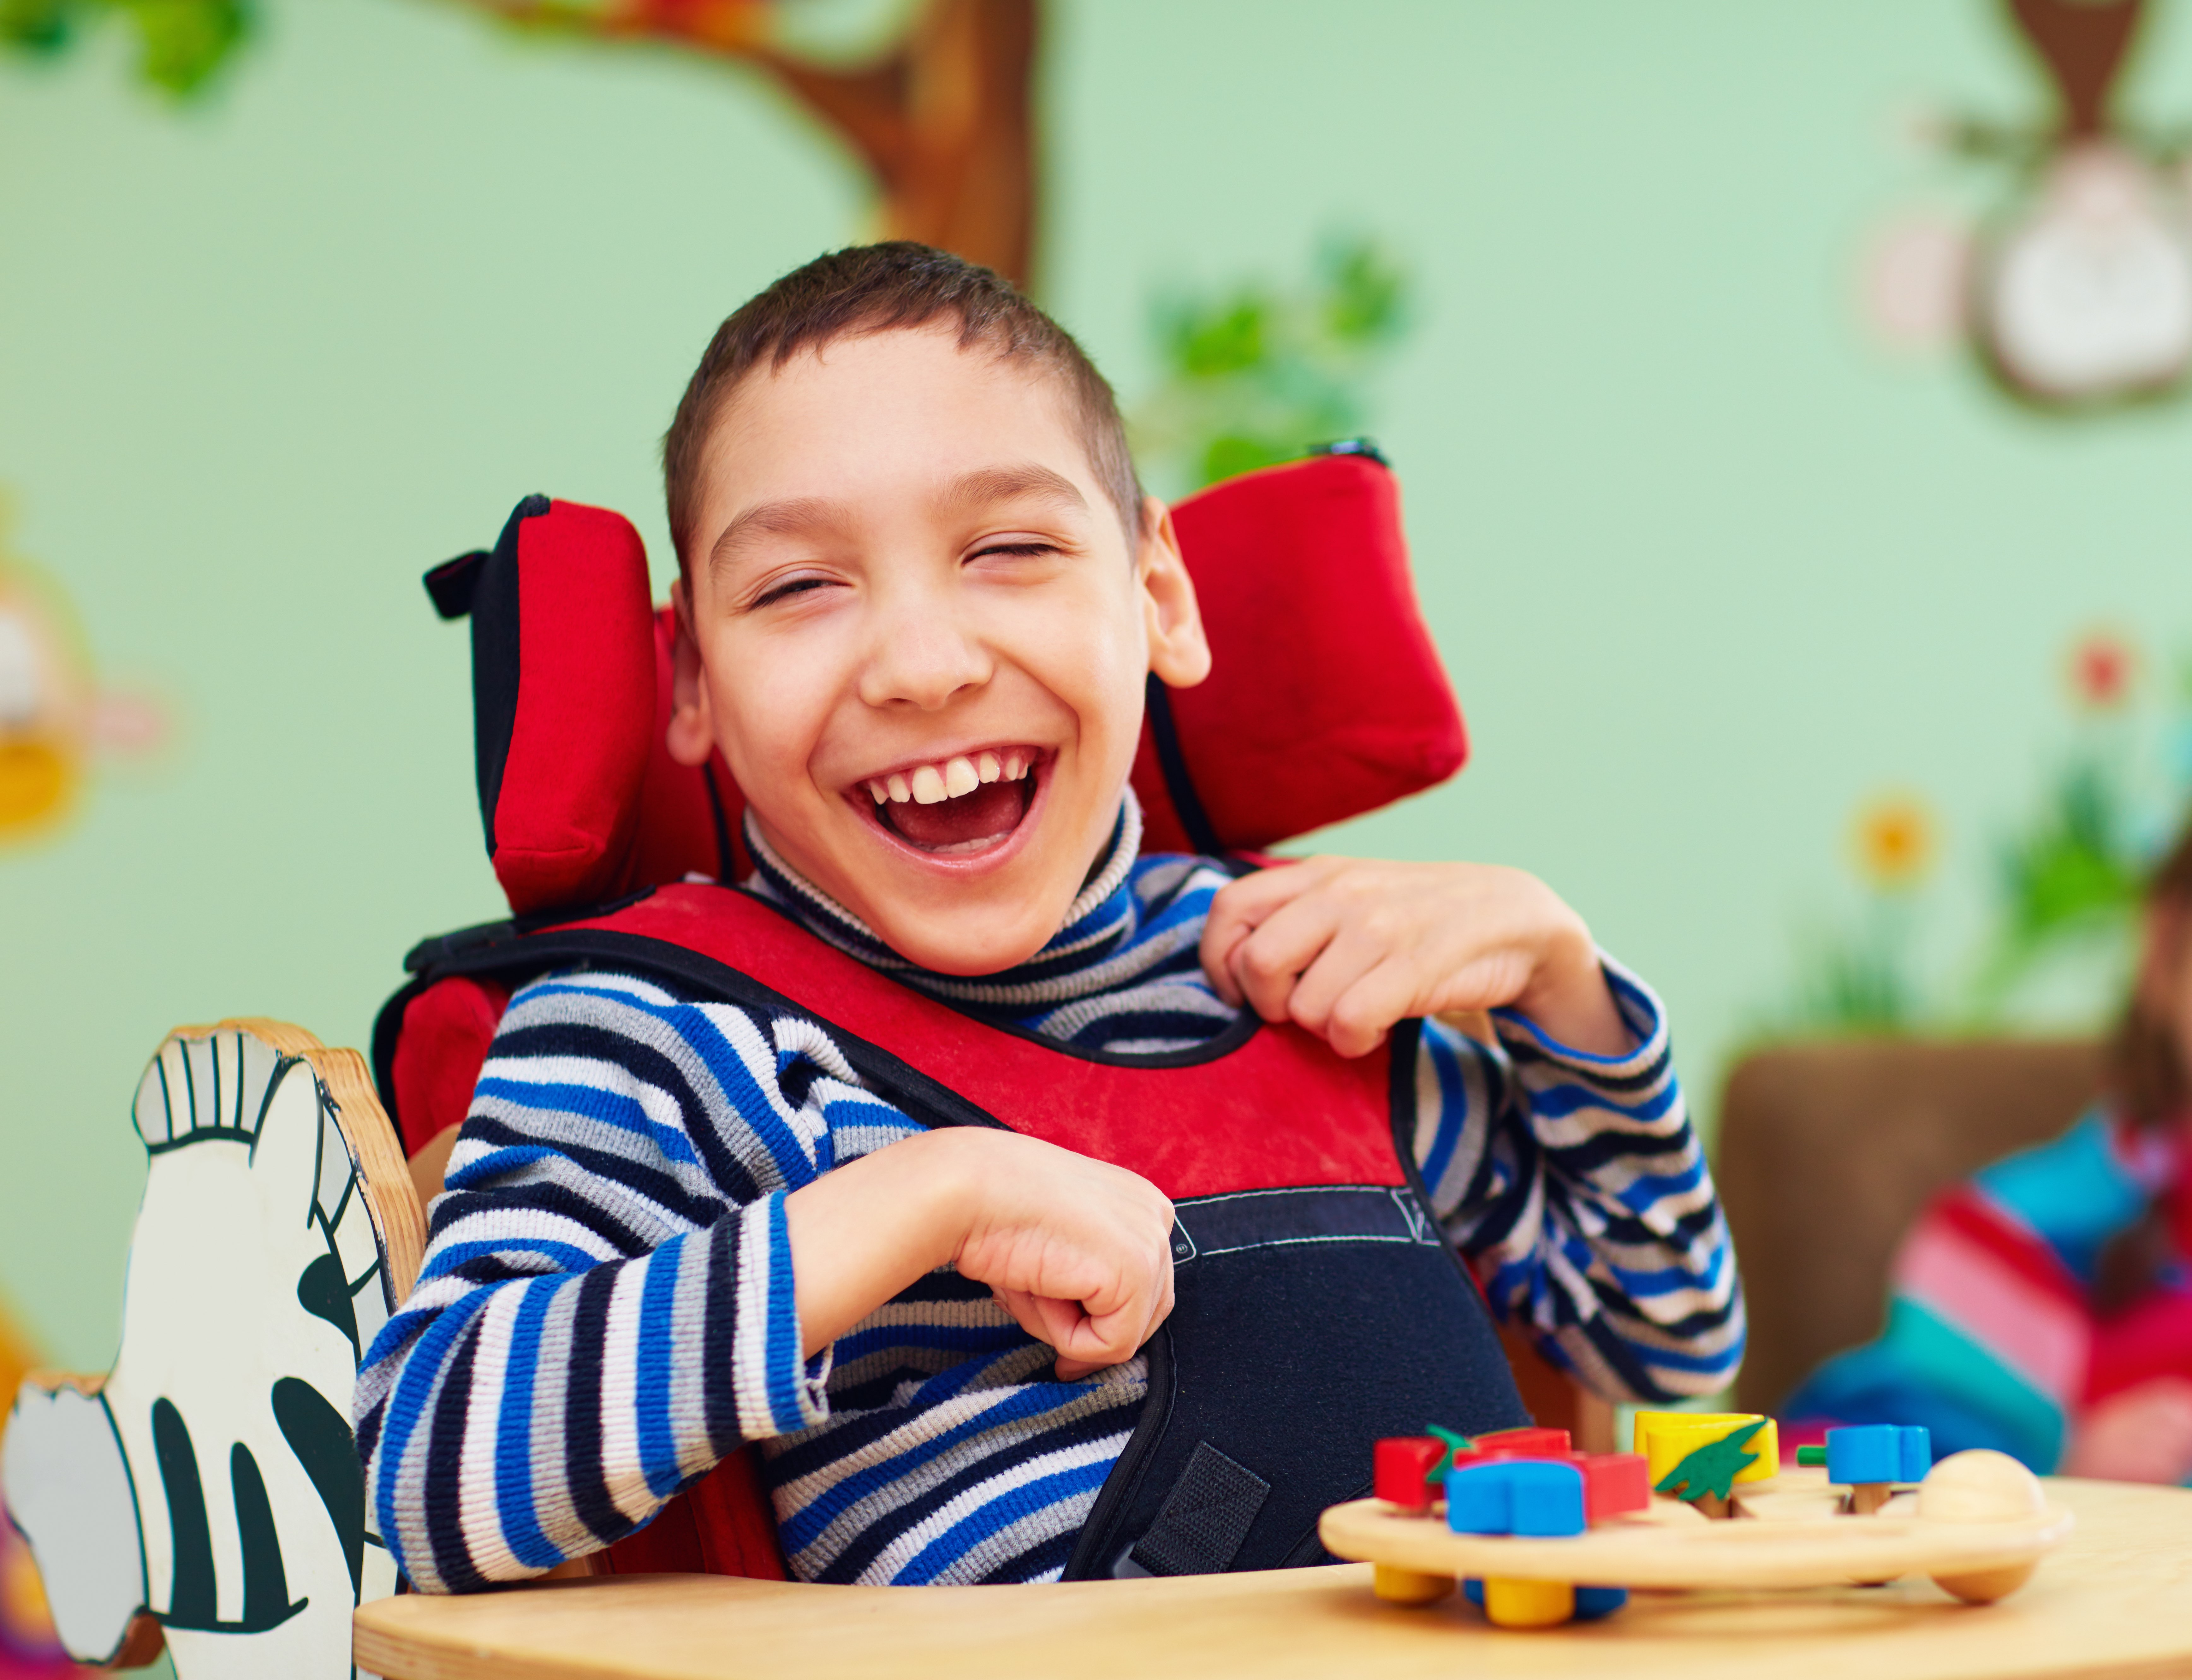 Very happy young boy in a wheelchair grinning for the camera